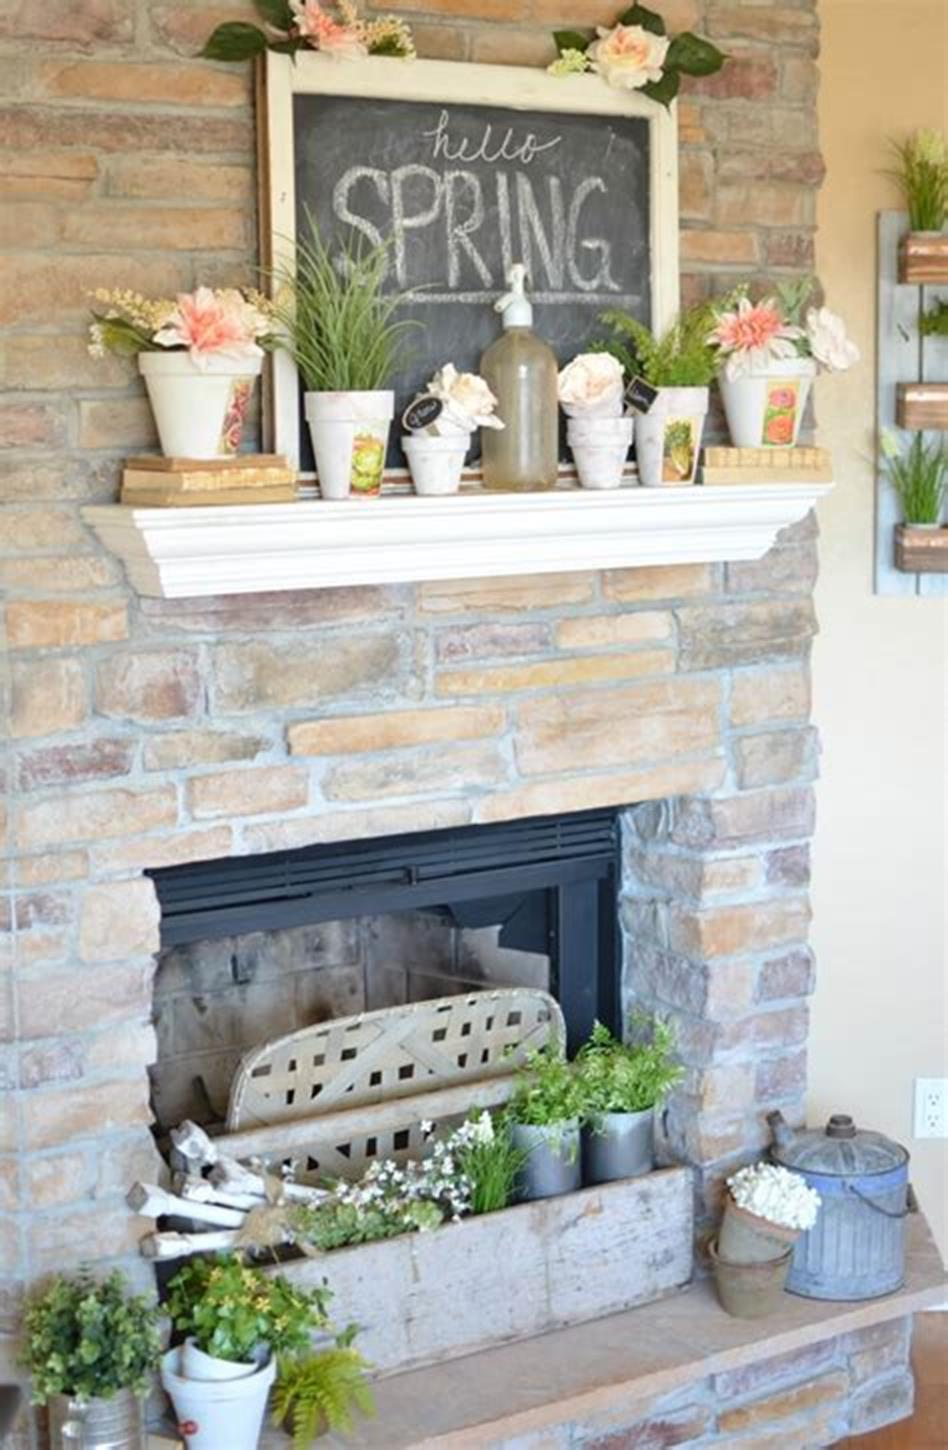 37 Beautiful Farmhouse Spring Decorating Ideas On a Budget for 2019 58